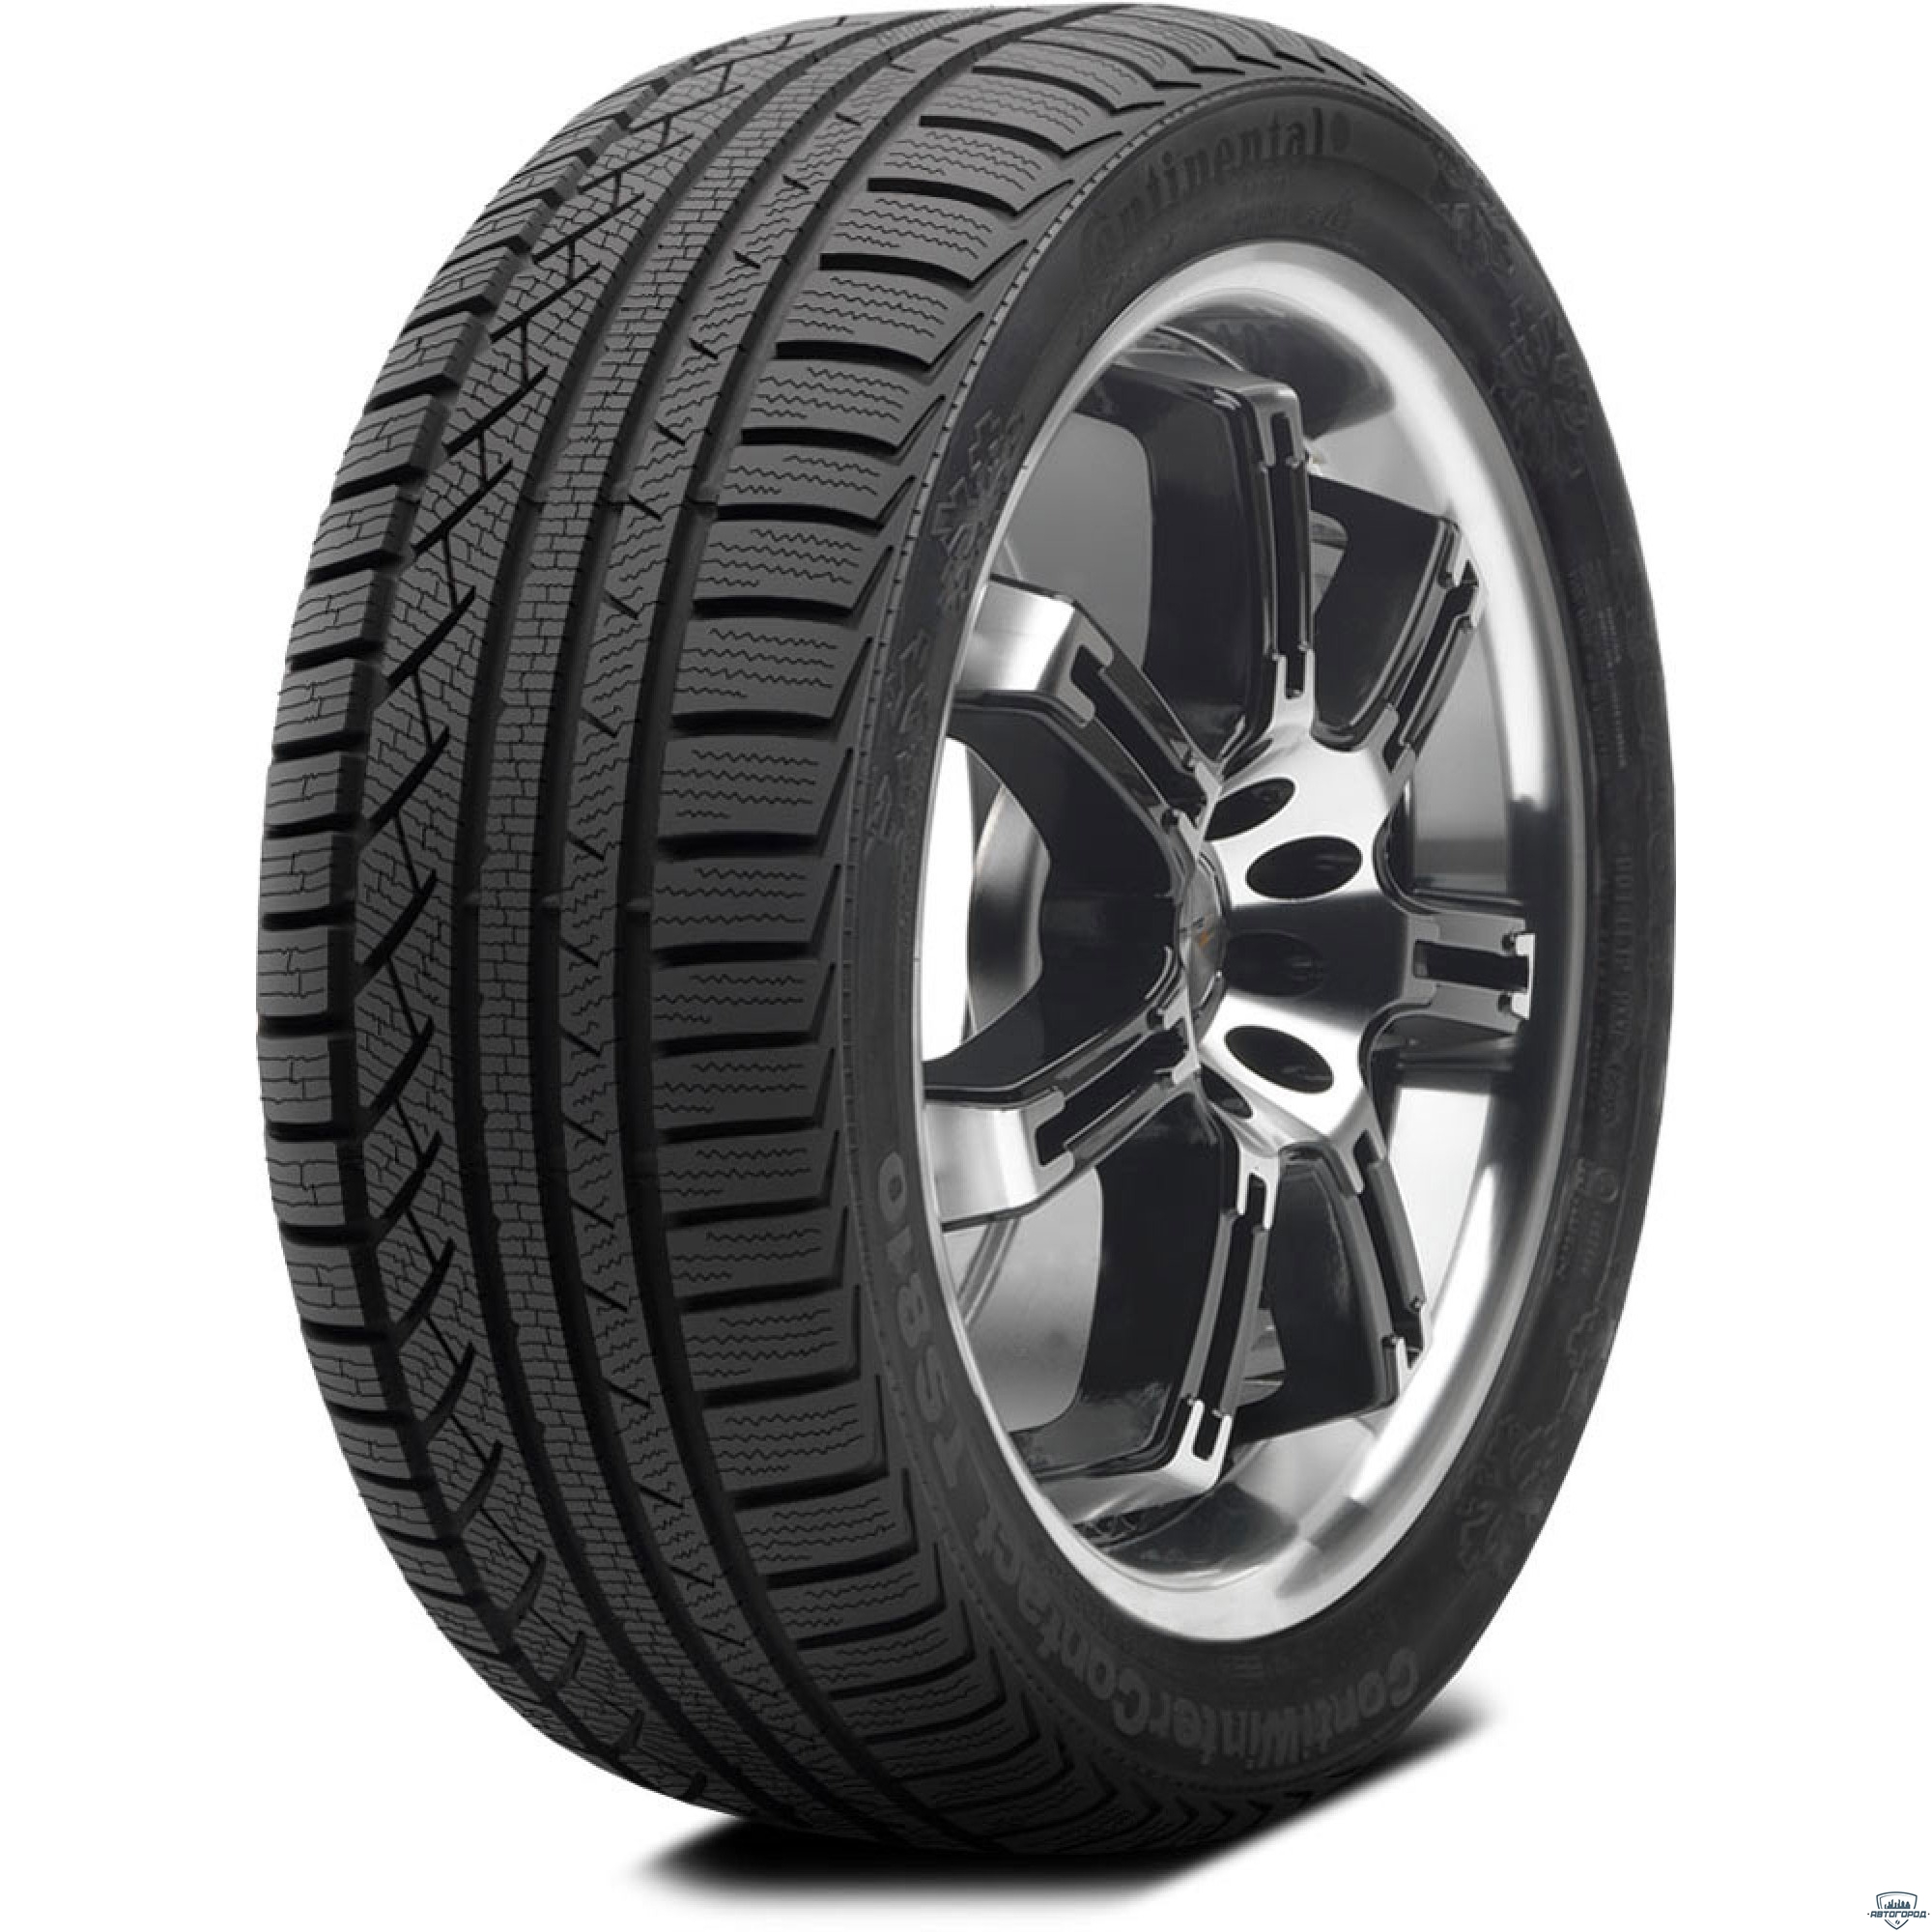 Шины Continental ContiWinterContact TS 810 185/65R15 88T MO